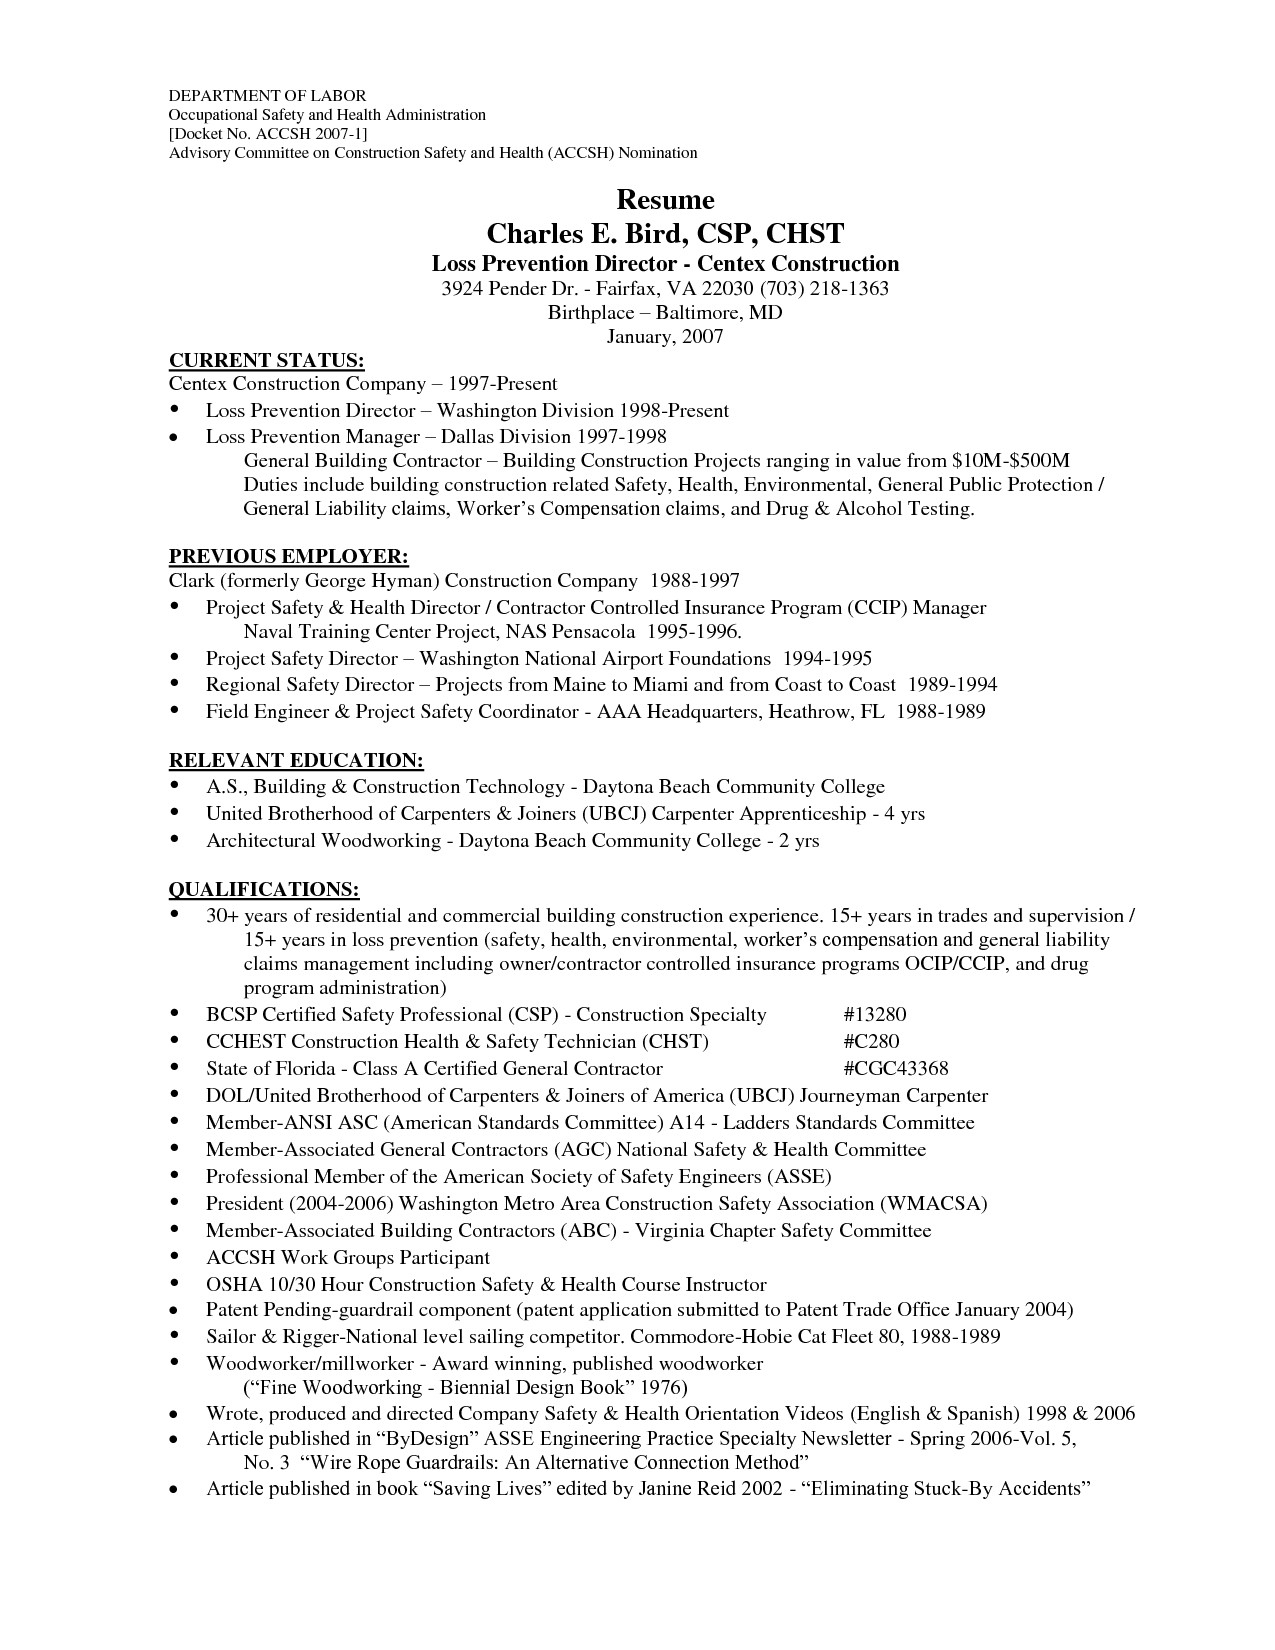 Construction Job Resume - Resume Templates for Construction Workers New General Construction